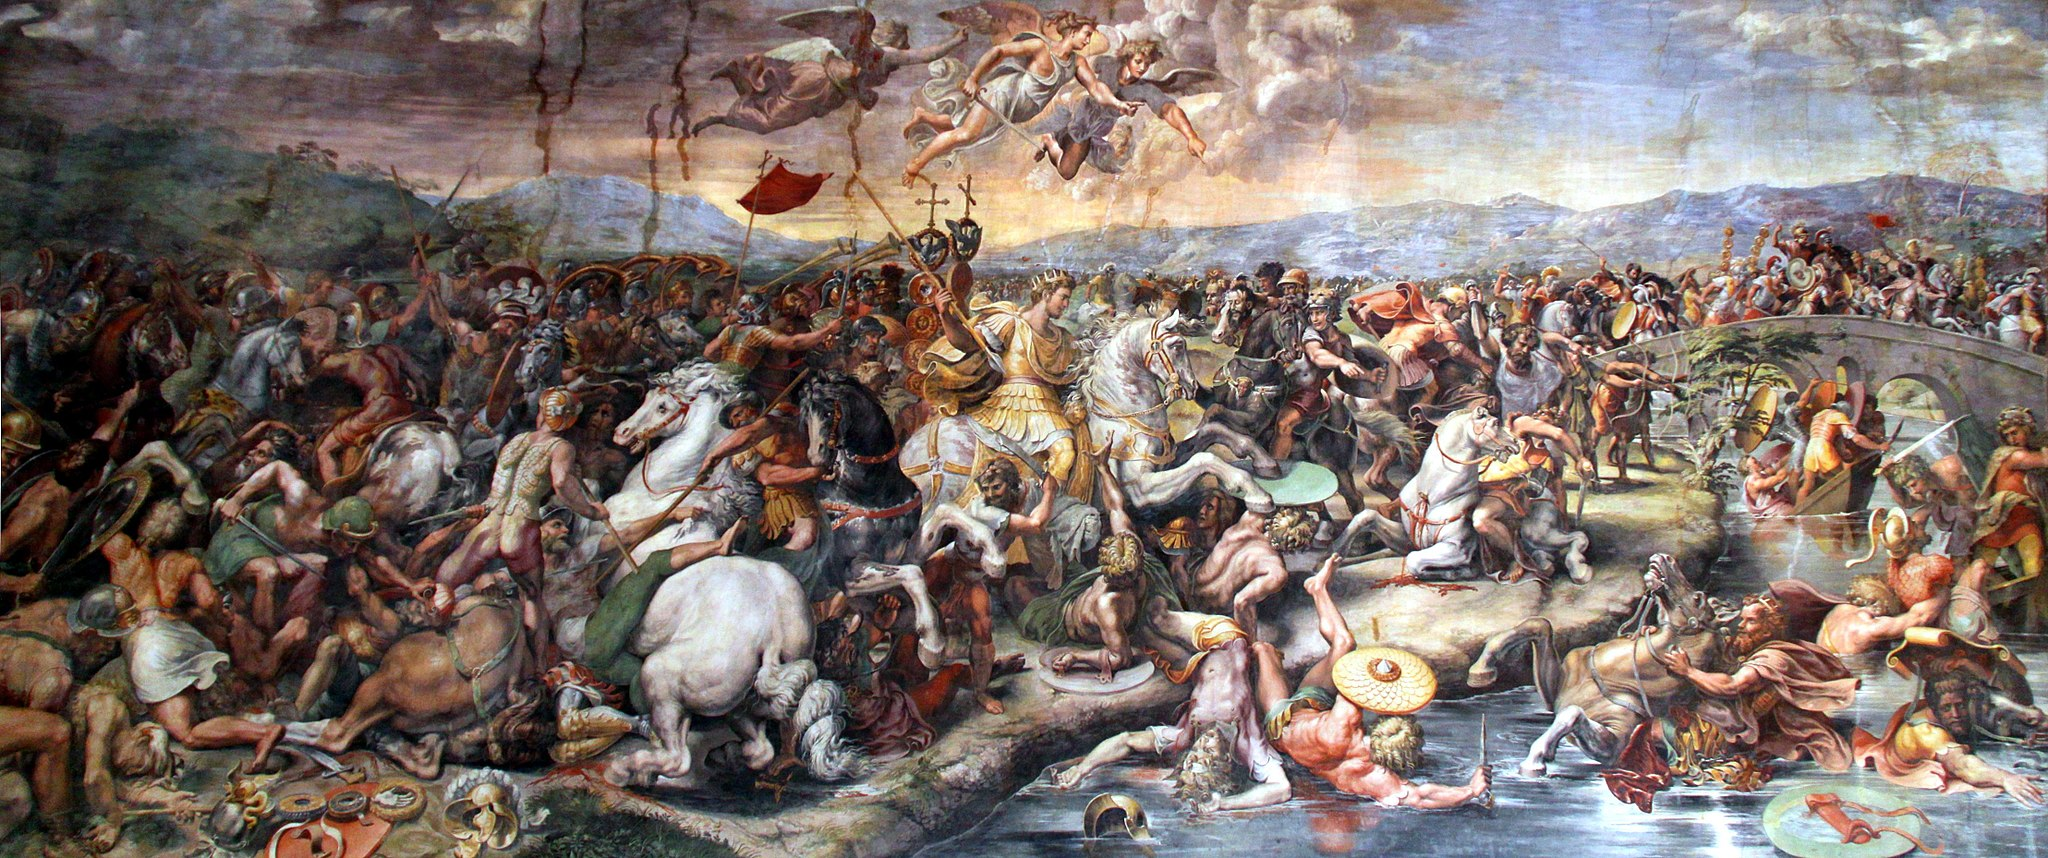 Giulio Romano, Battle of the Milvian Bridge (1520-1524),  Vatican City